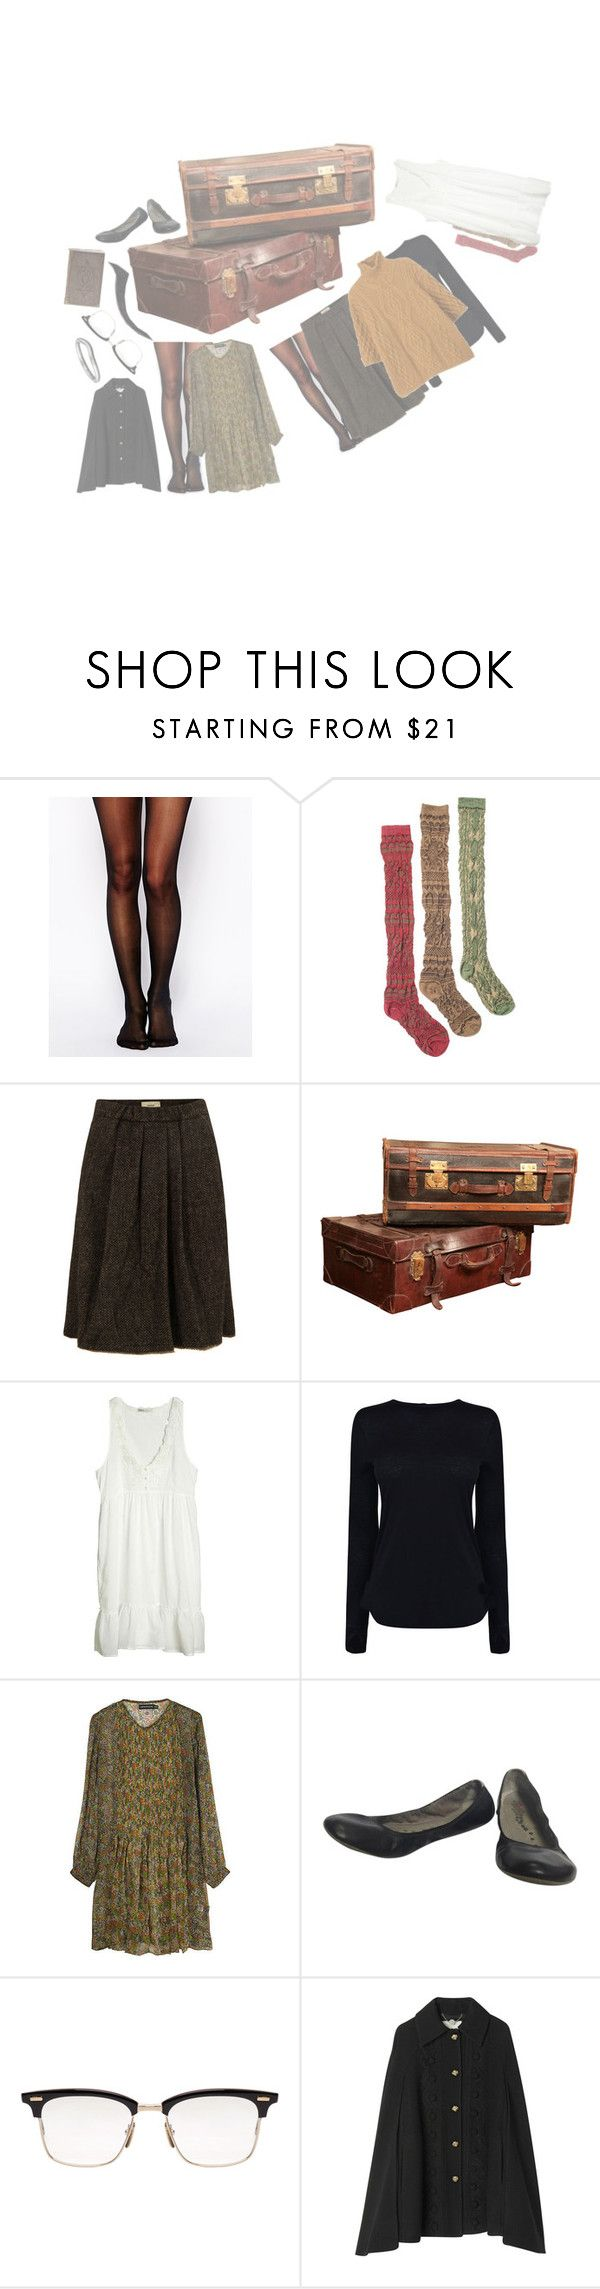 """""""weekend trip on summon"""" by ruthierue on Polyvore featuring Wolford, Muk Luks, Humanoid, Ambre Babzoe, Helmut Lang, Chloé, Antik Batik, Thom Browne, STELLA McCARTNEY and Tiffany & Co."""